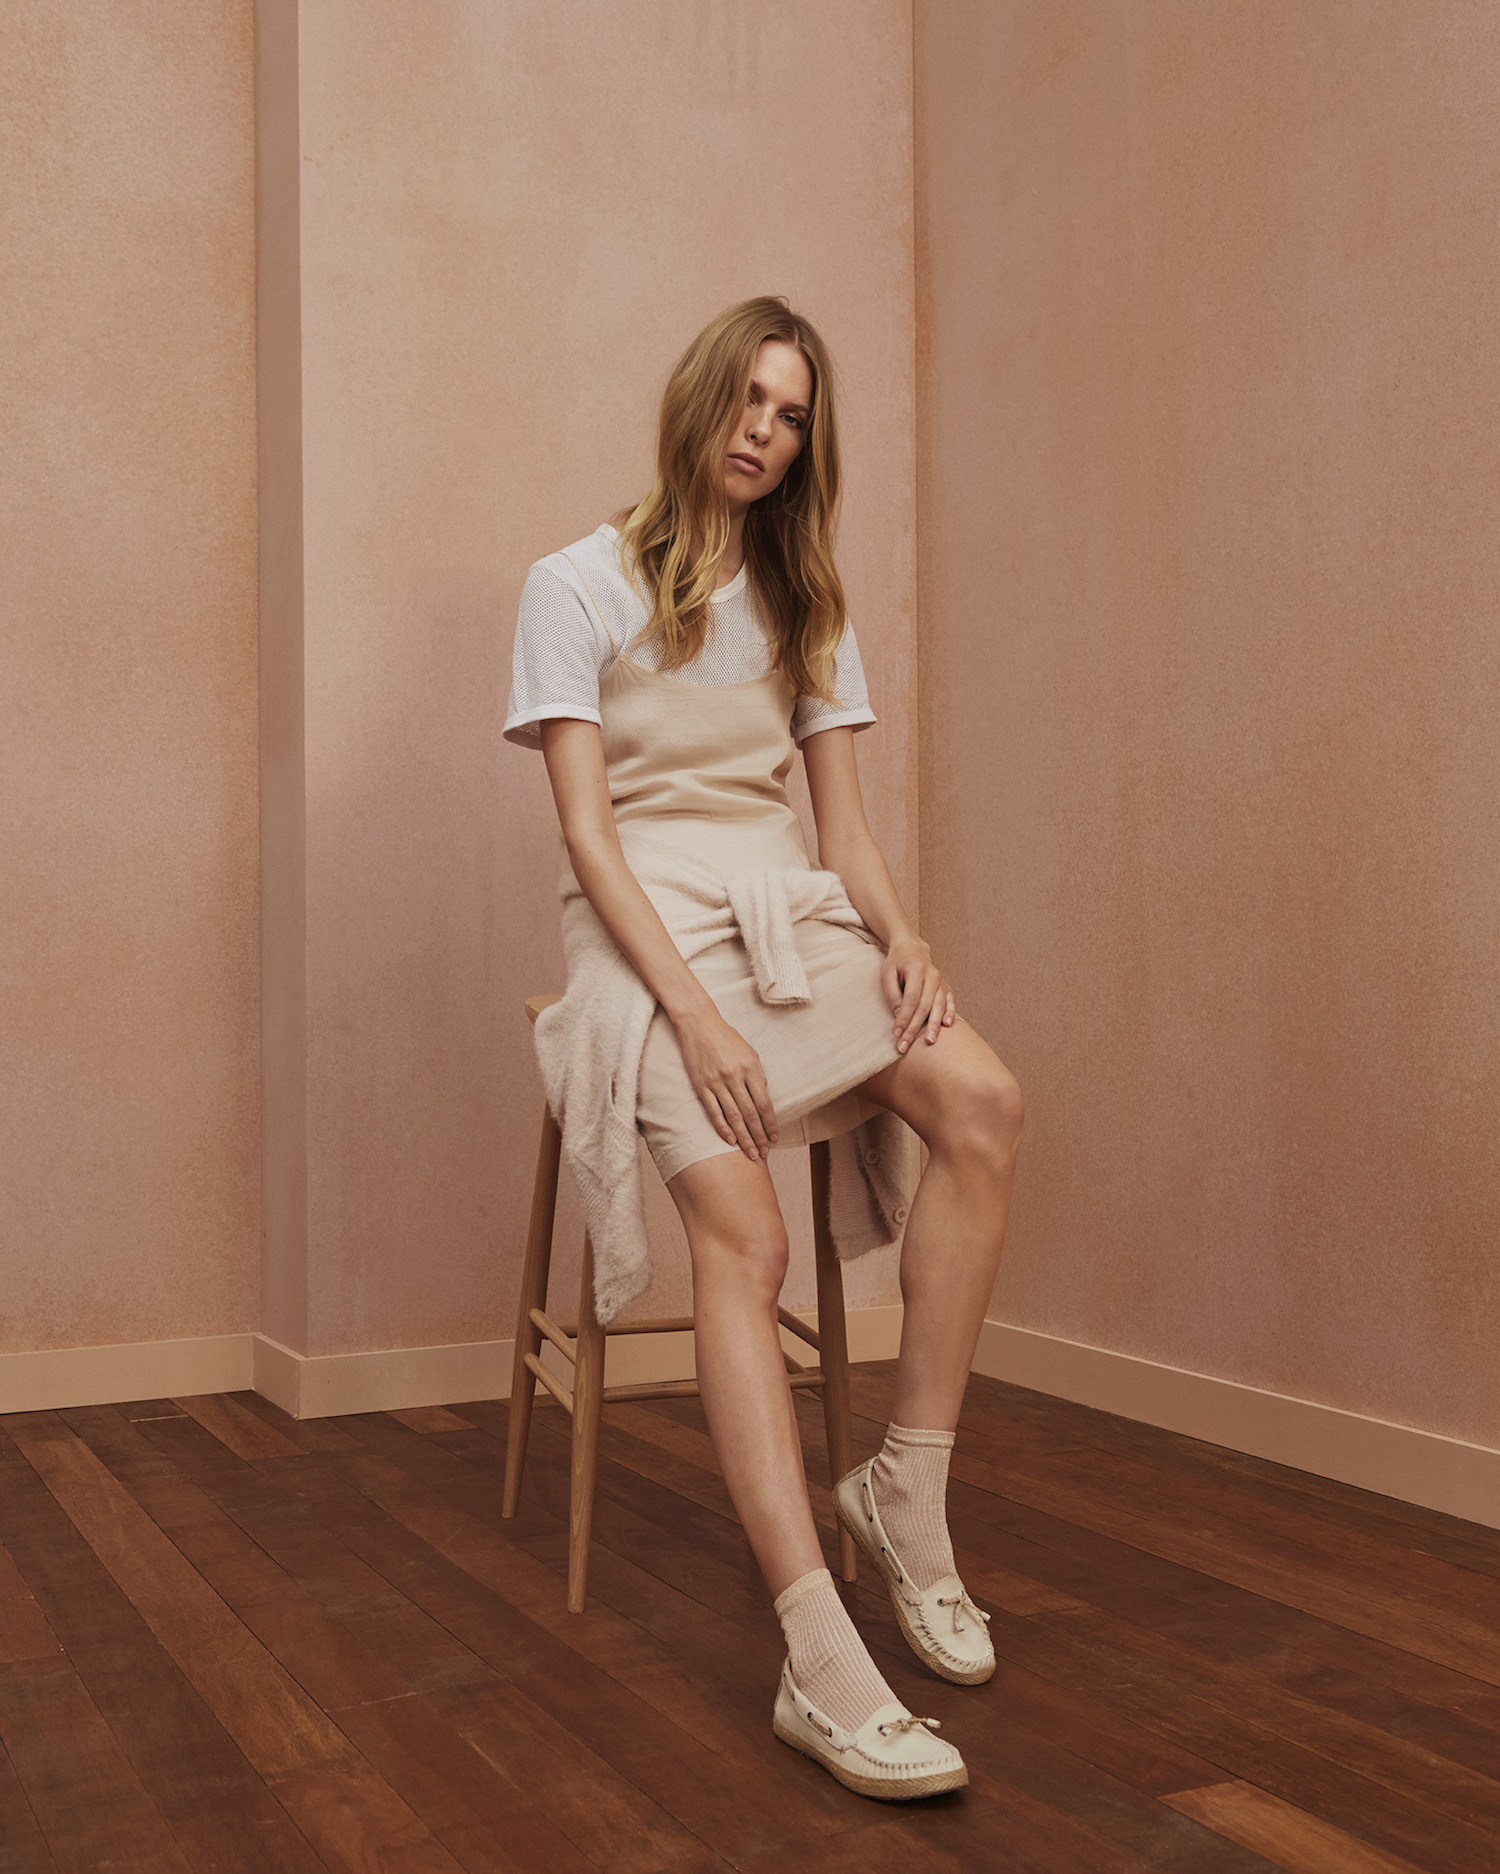 Model wearing a tee, slip dress, socks, and the Chivon moccasin